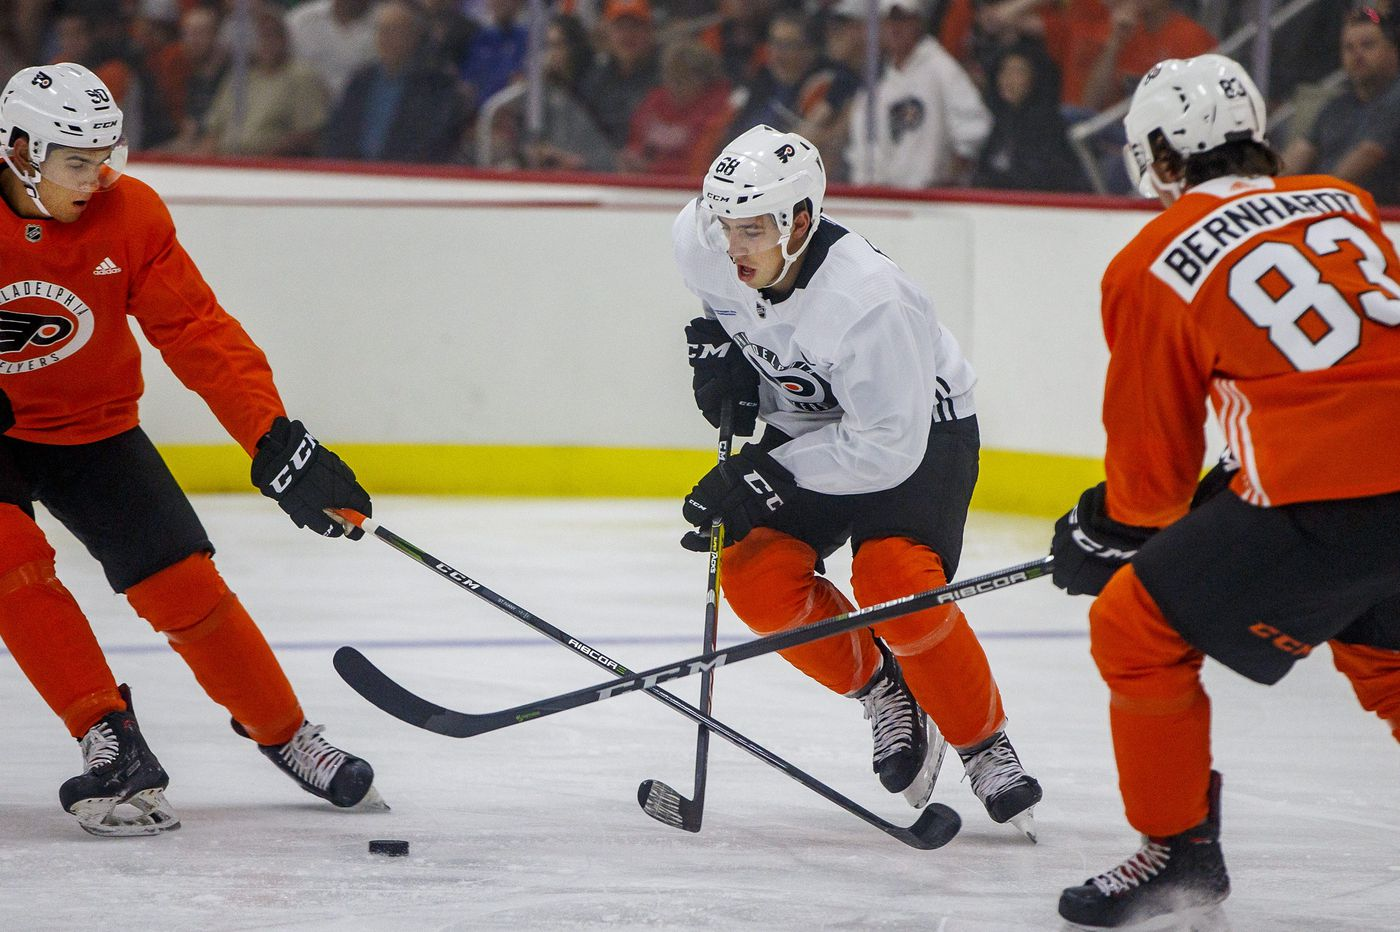 Morgan Frost, impressive in development camp, is aiming for spot with Flyers this season